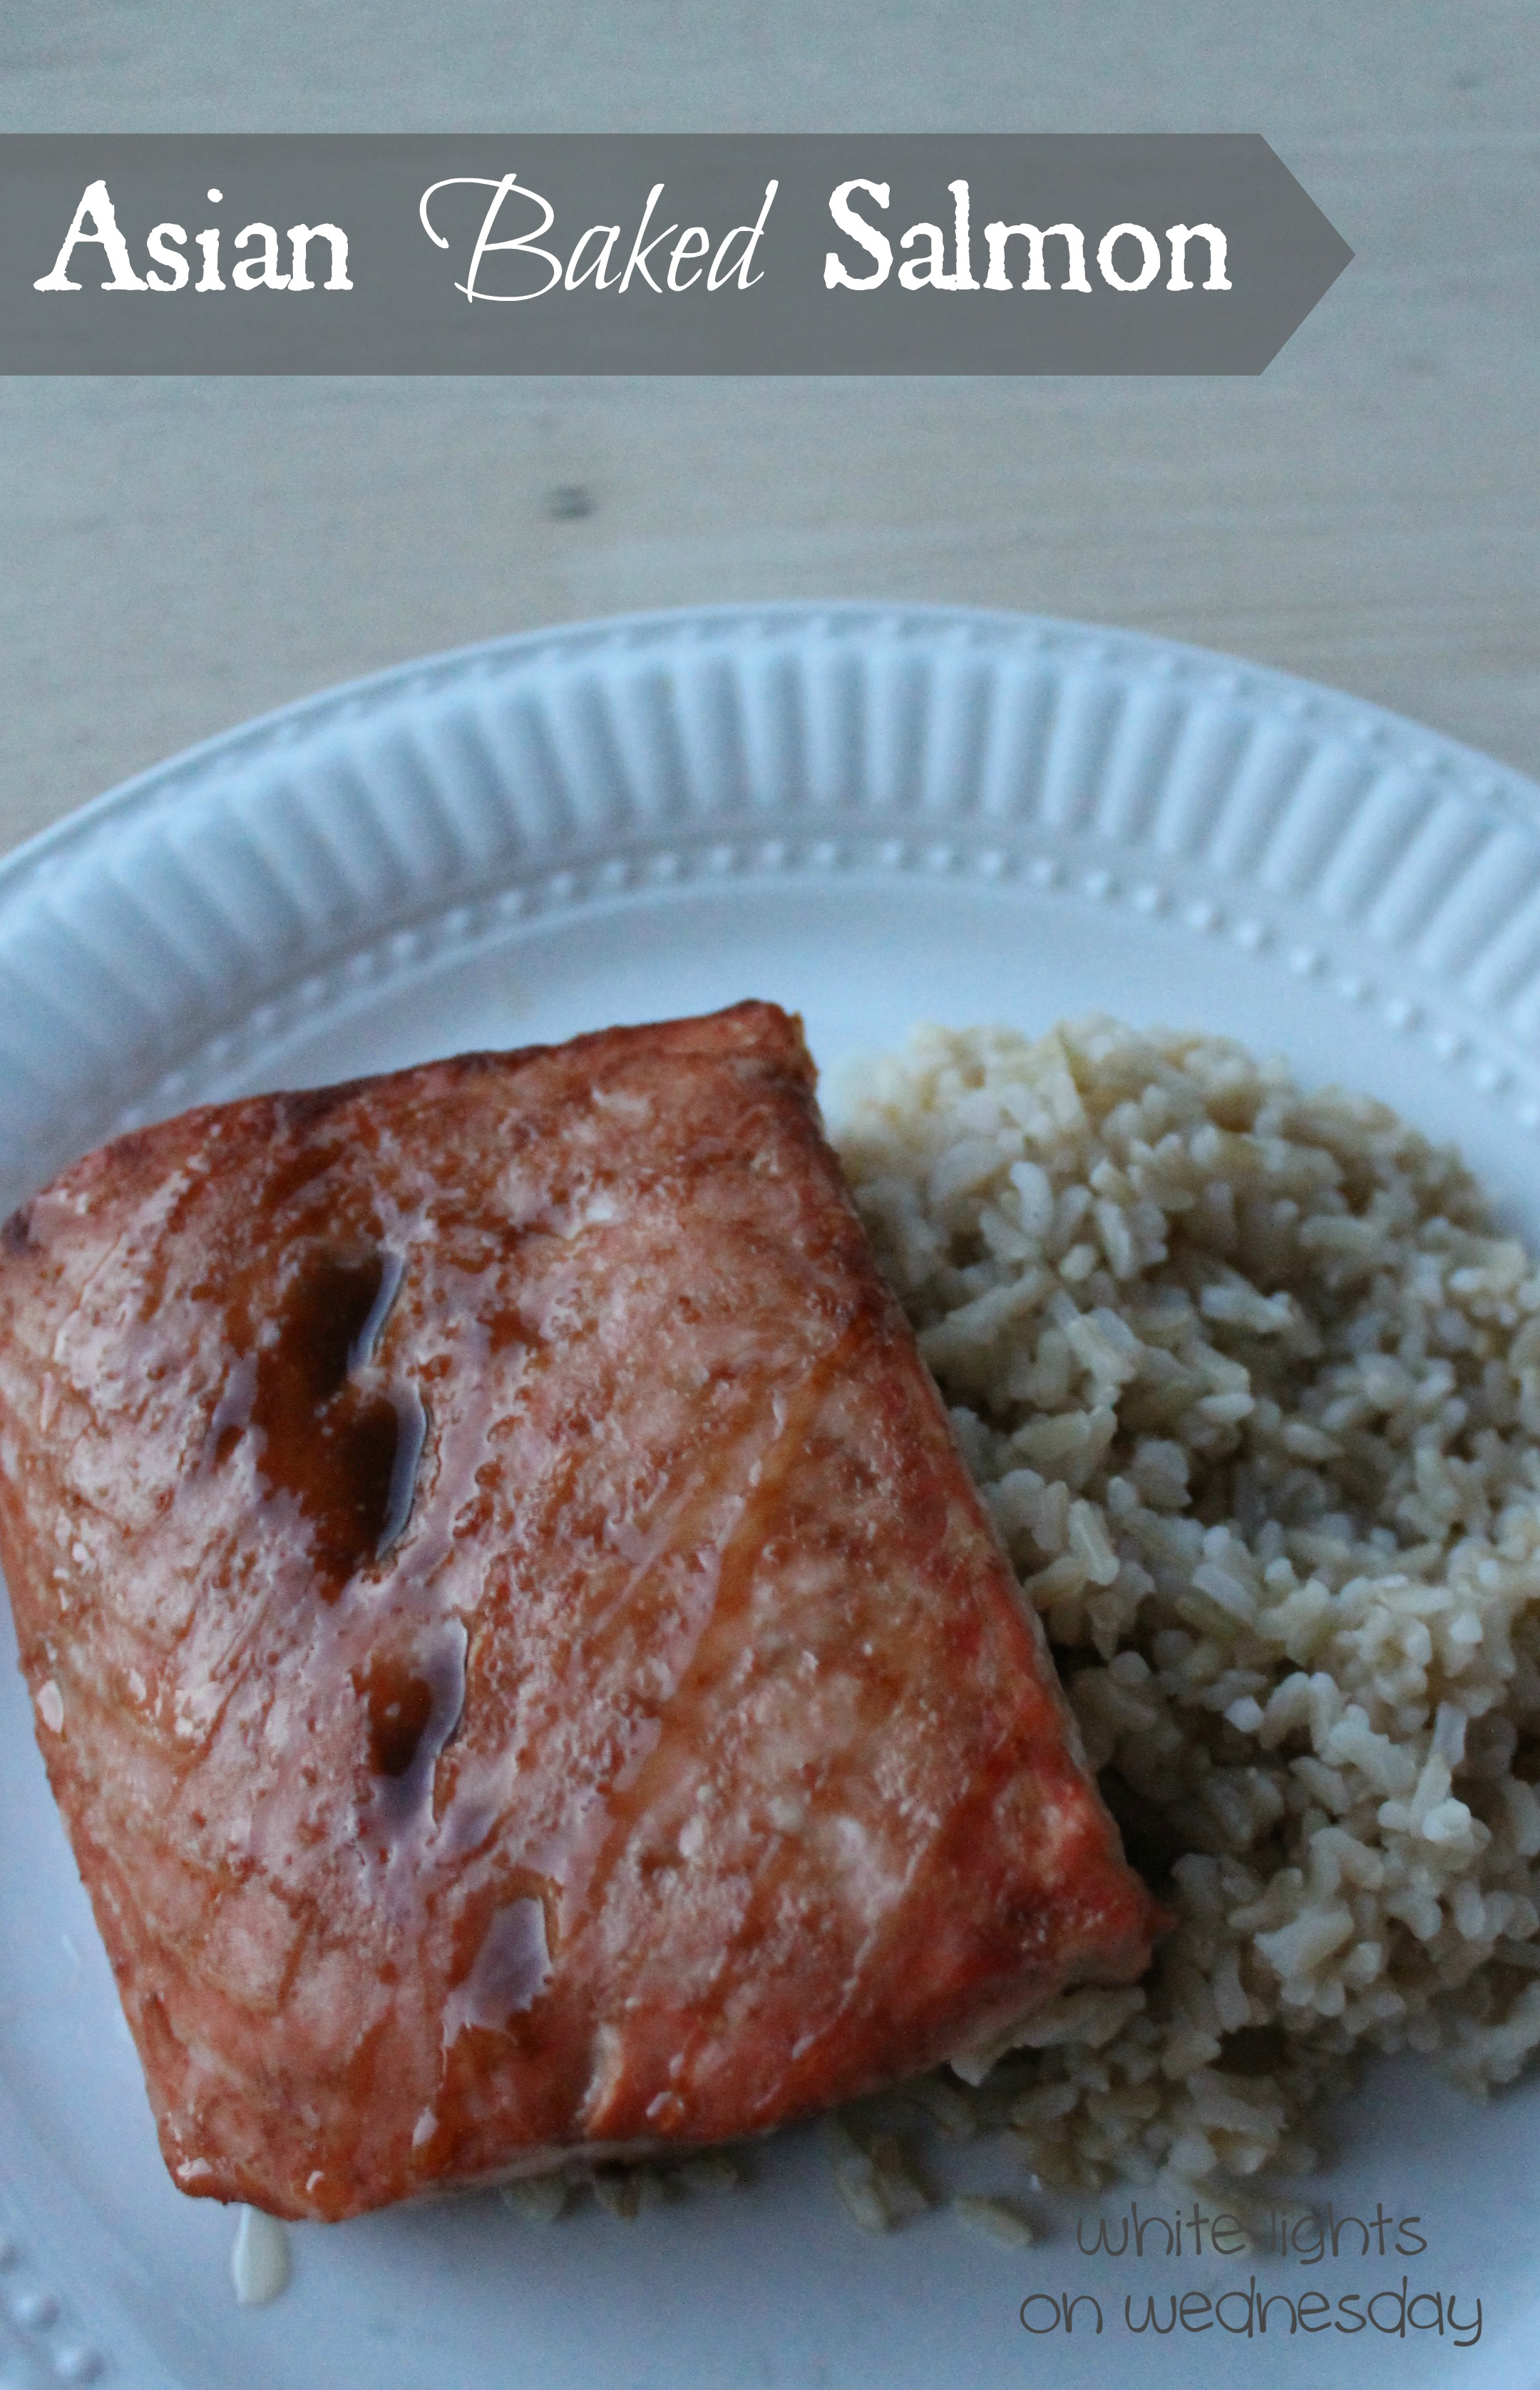 Asian Baked Salmon